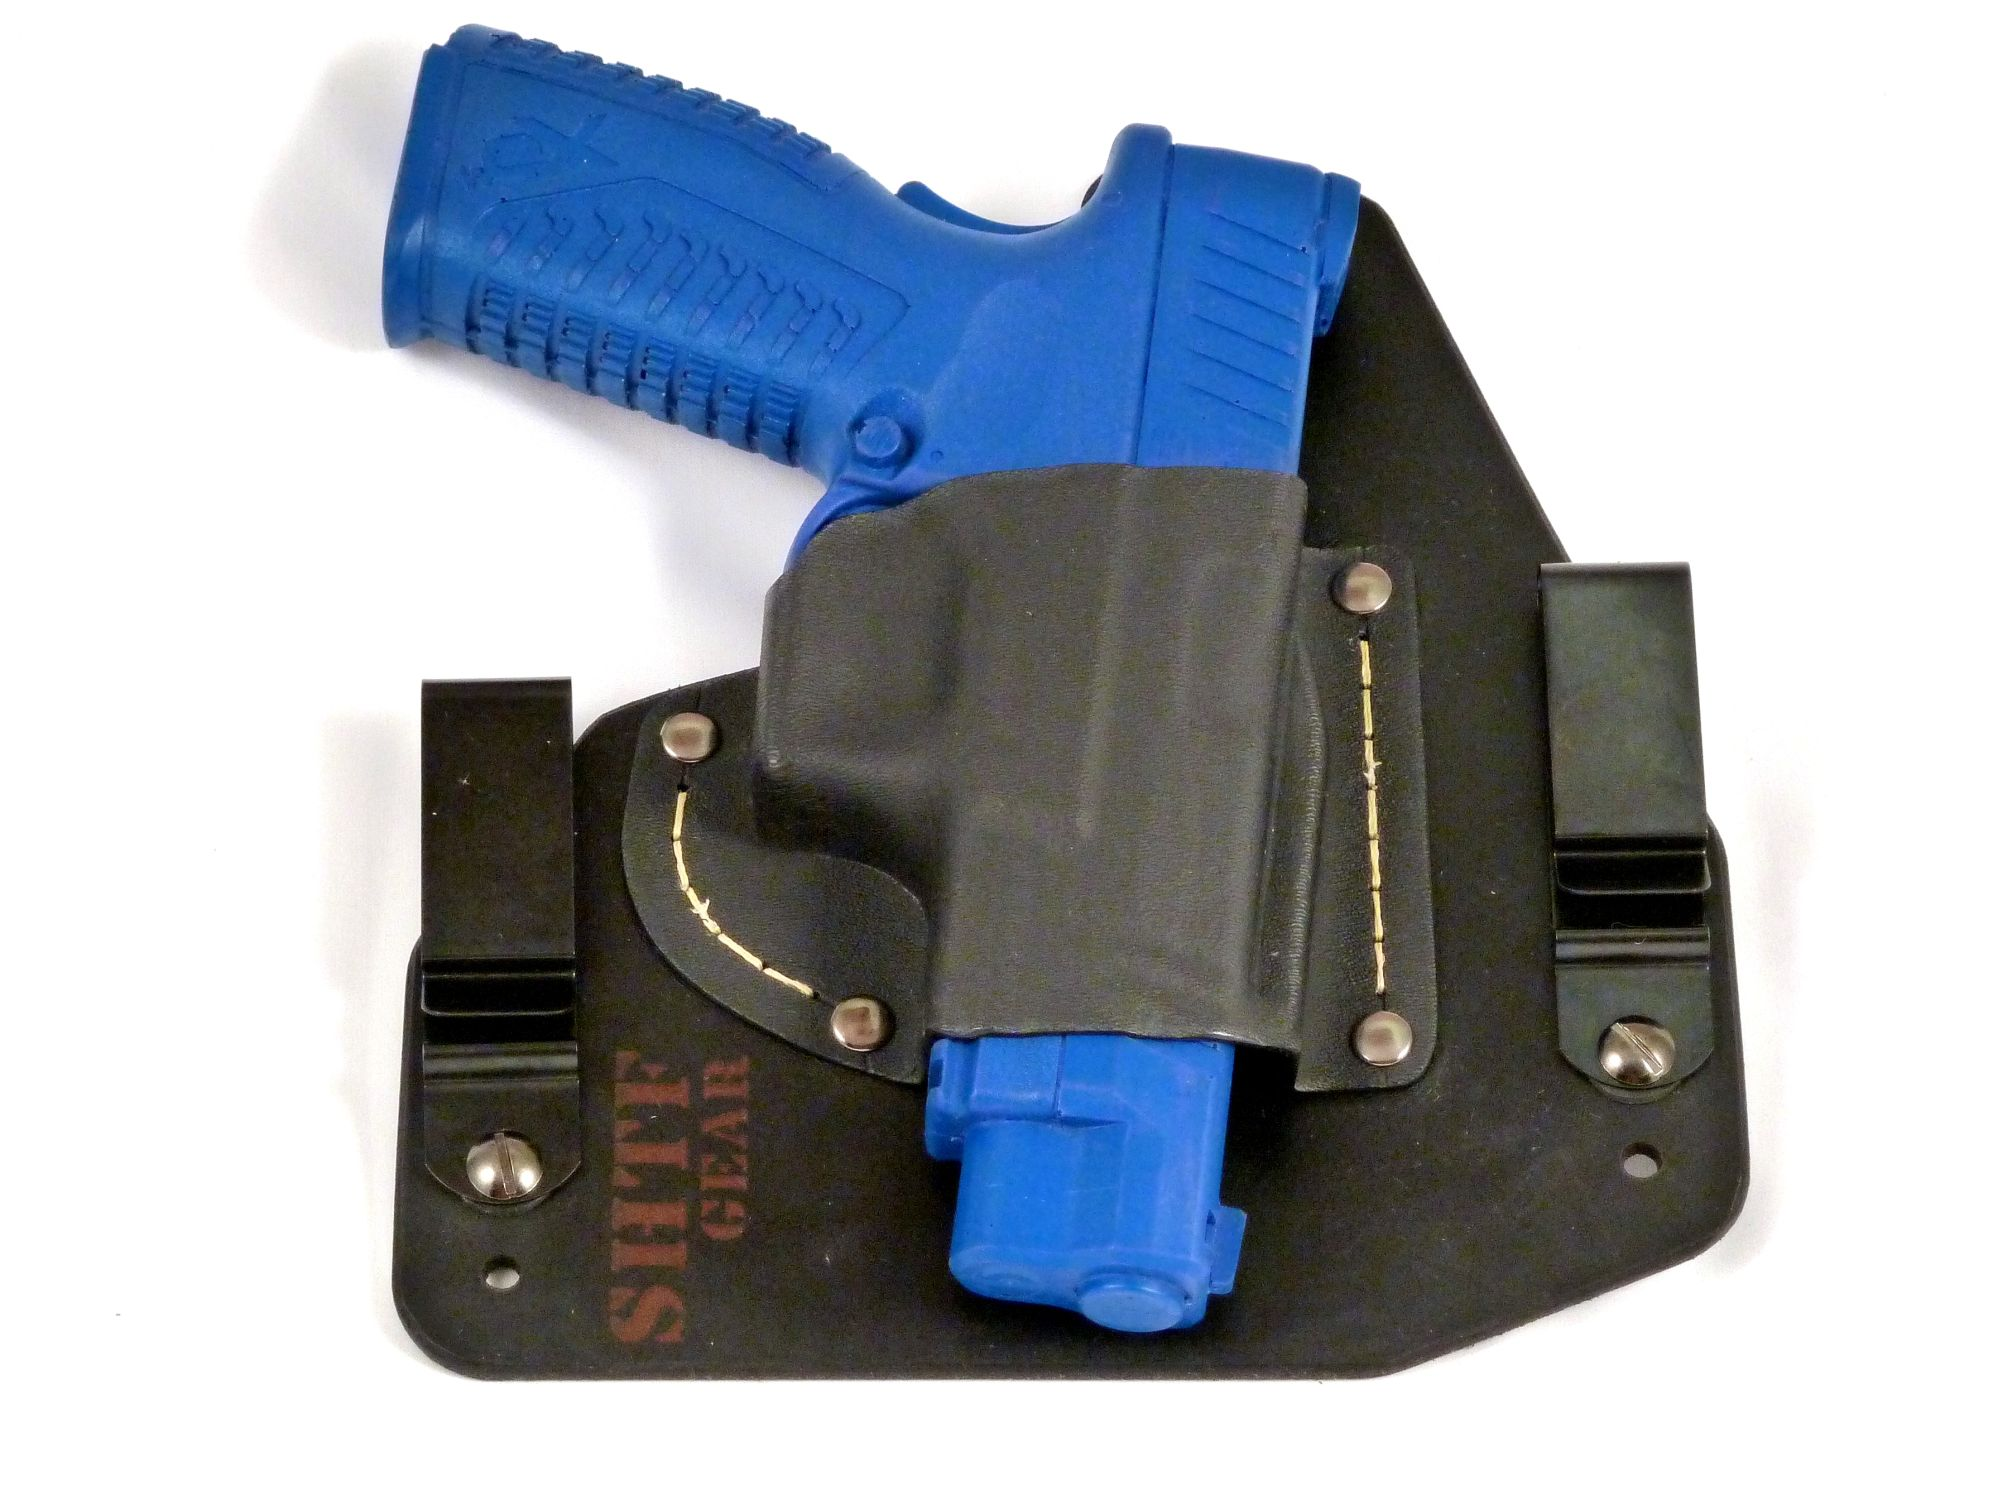 New Pictures of  My Holsters-xdm-gun-front-1500.jpg